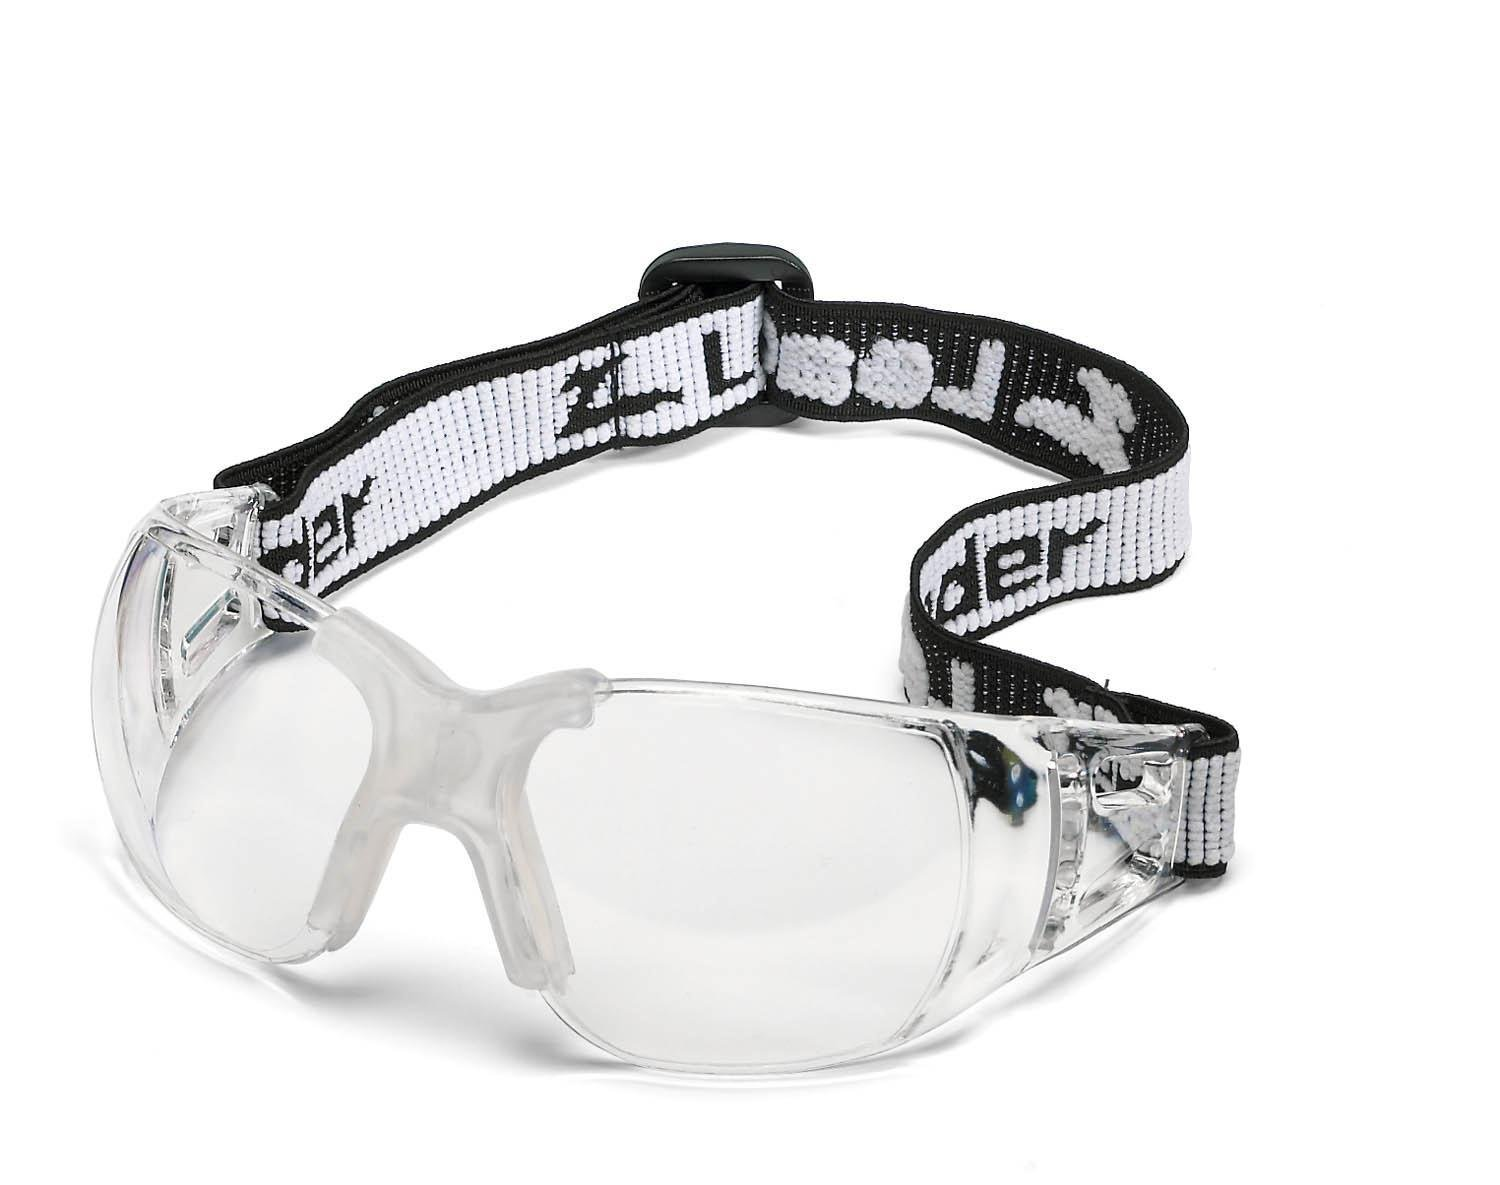 7c34a8f408a2 Sports Goggles for Kids. Prescription available. A Sight for Sport Eyes